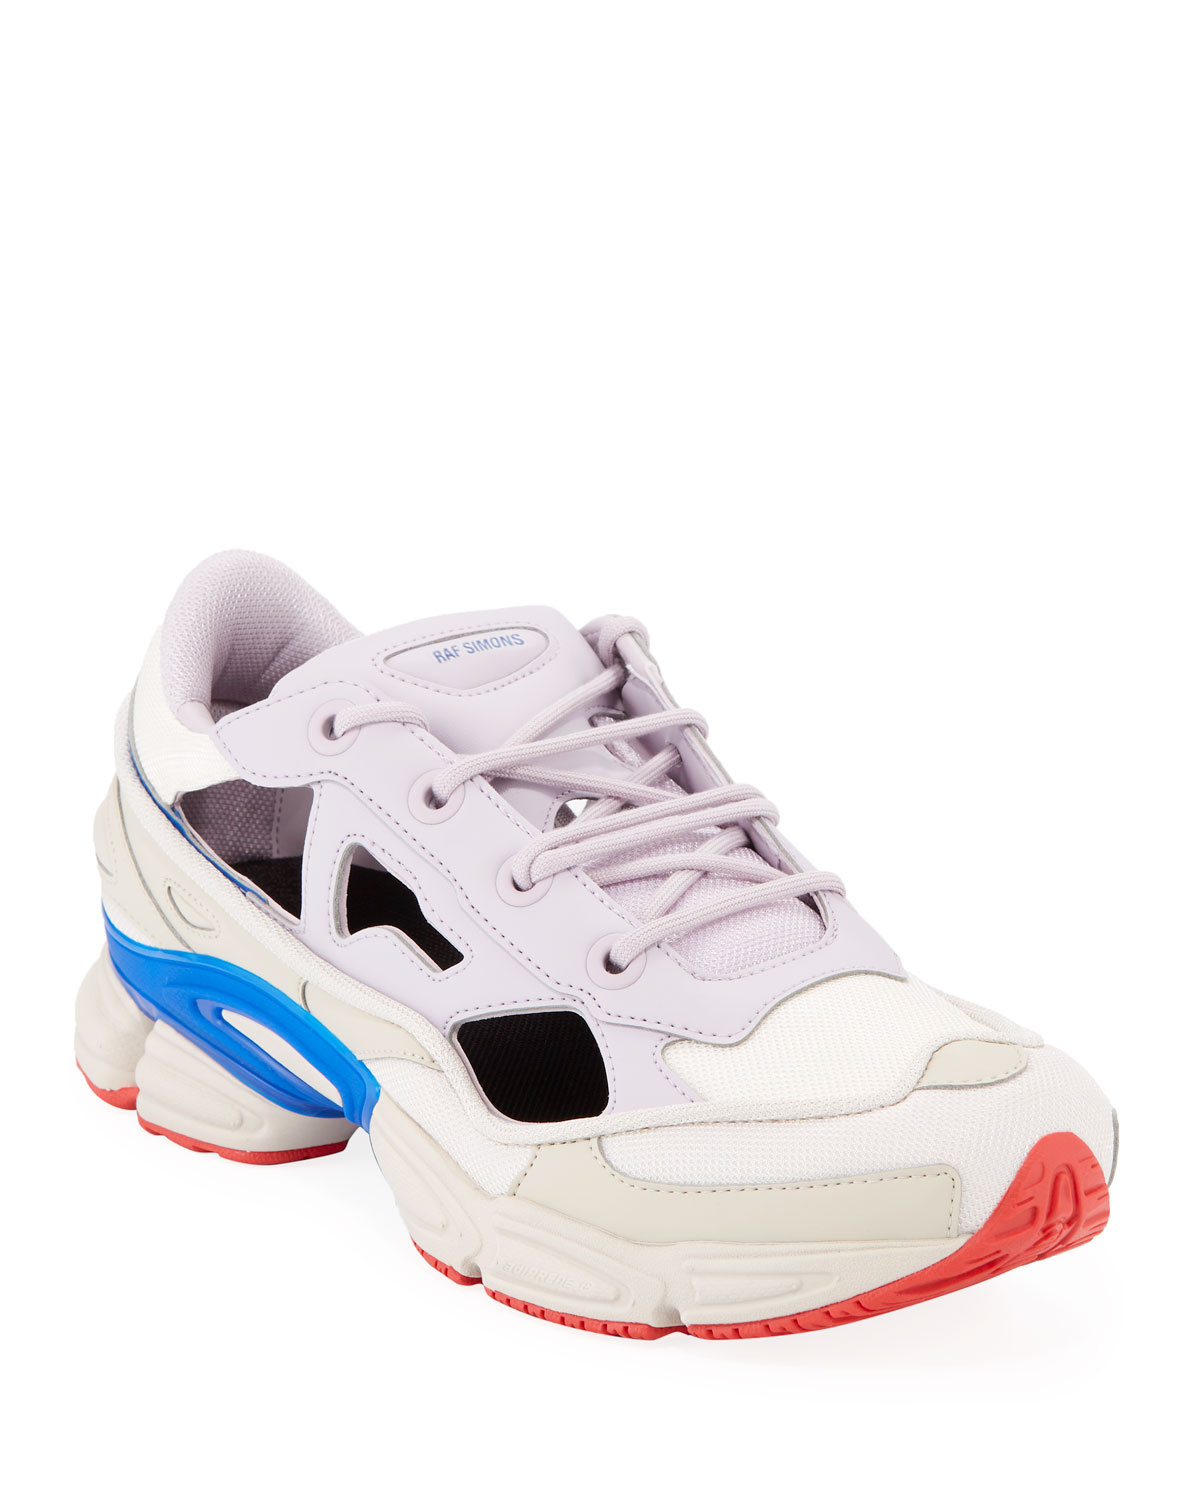 e4097db4e6a adidas by Raf Simons Men s Replicant Ozweego Trainer Sneakers ...